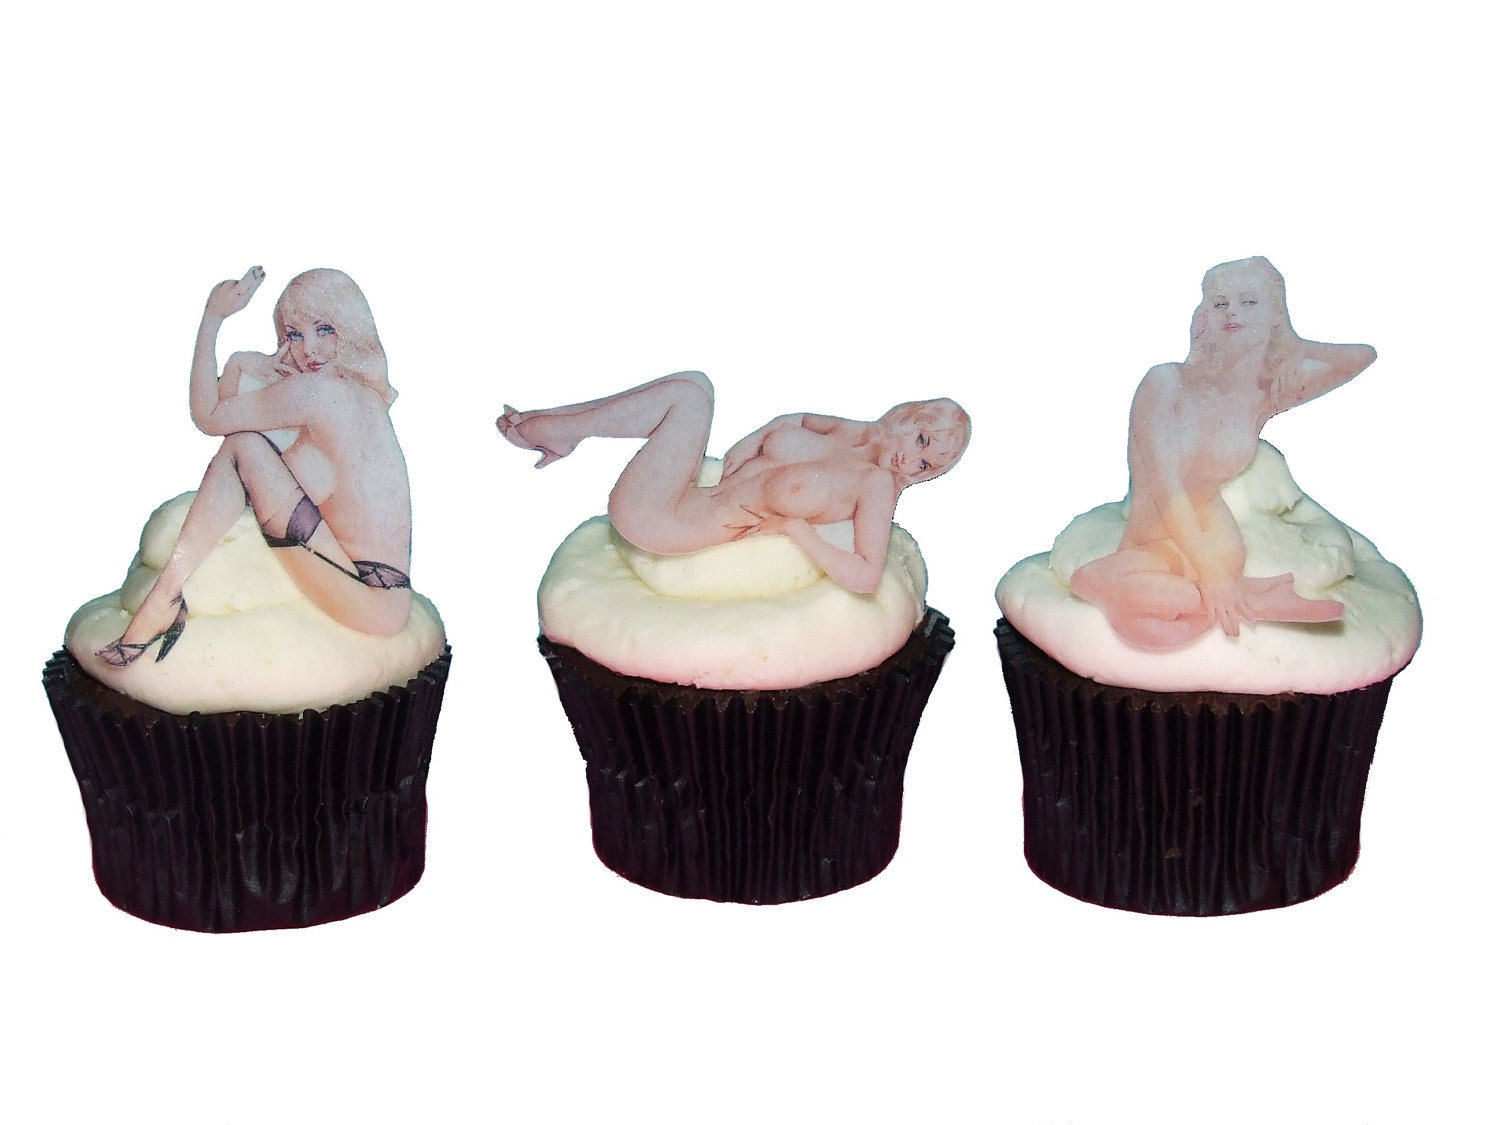 Valentines Day For Him Naked Women Cake Topper Edible-7151